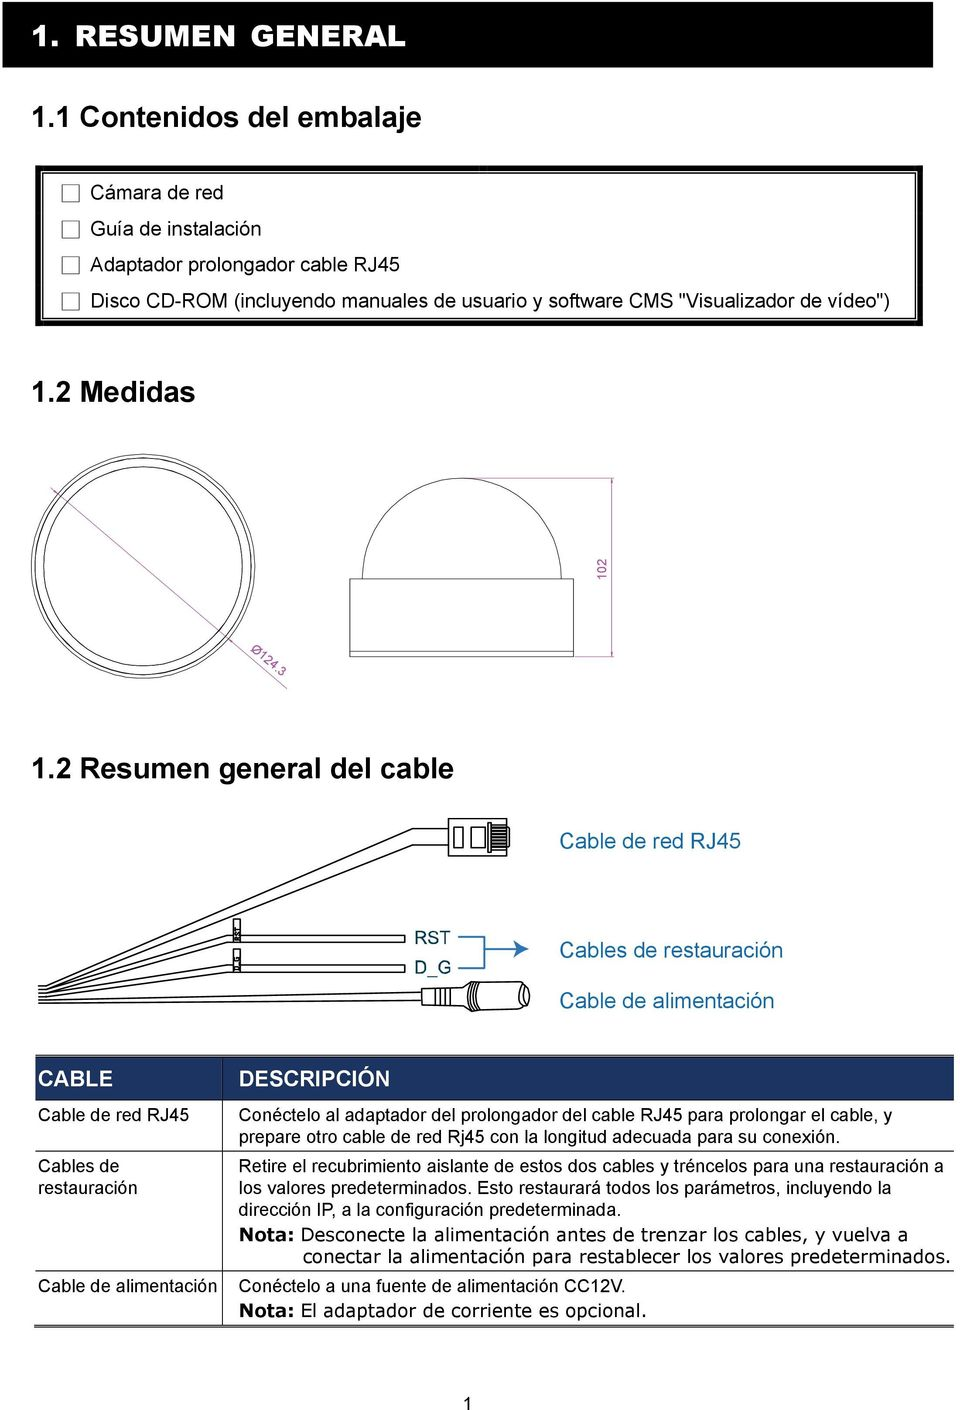 3 1.2 Resumen general del cable Cable de red RJ45 Cables de restauración Cable de alimentación CABLE Cable de red RJ45 Cables de restauración DESCRIPCIÓN Conéctelo al adaptador del prolongador del